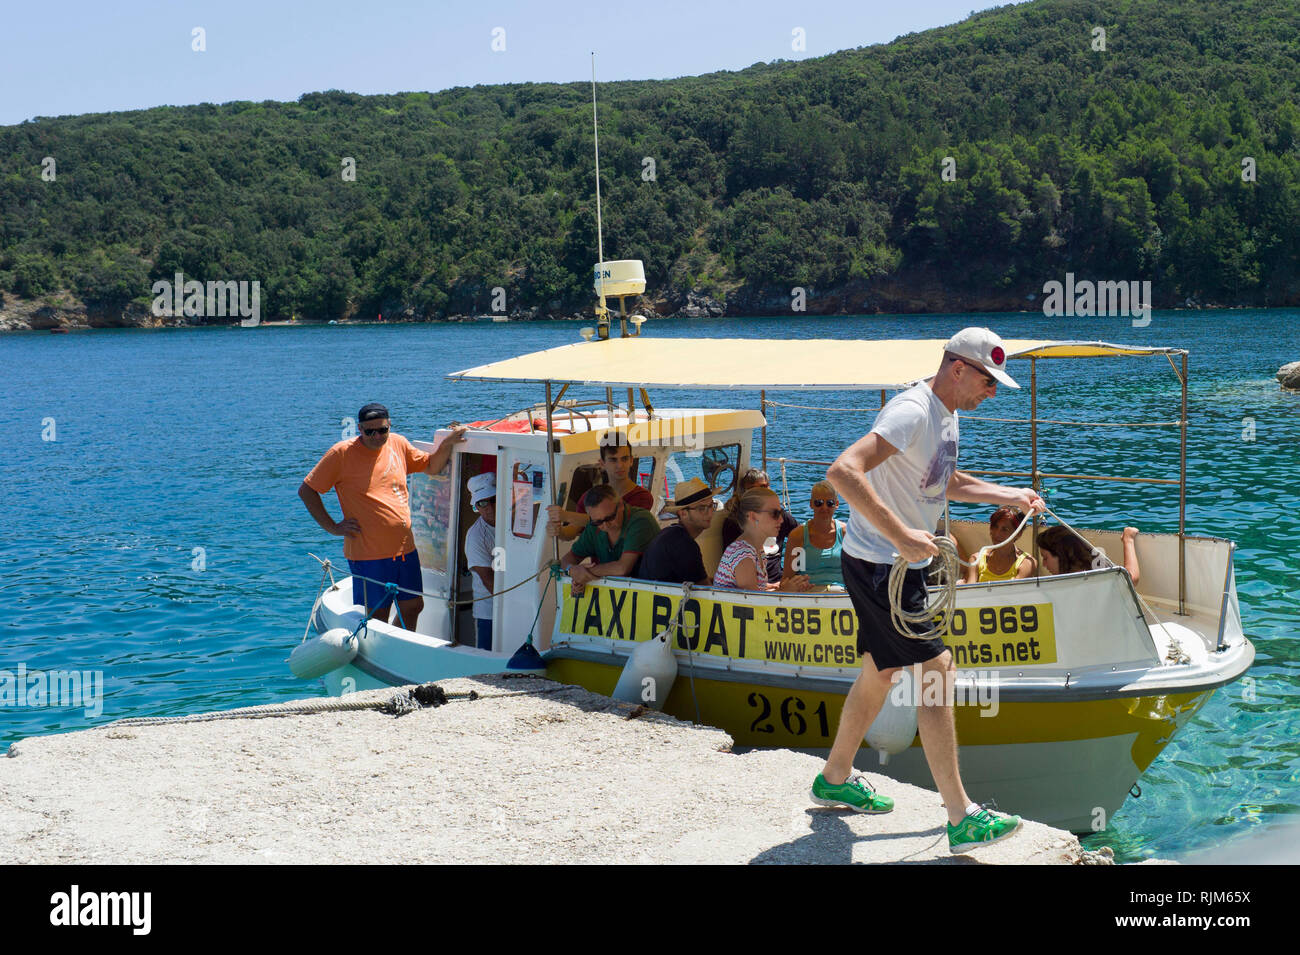 A small taxi boat ( ferry ) lands in the harbour of Valun village on the island of Cres Croatia Stock Photo